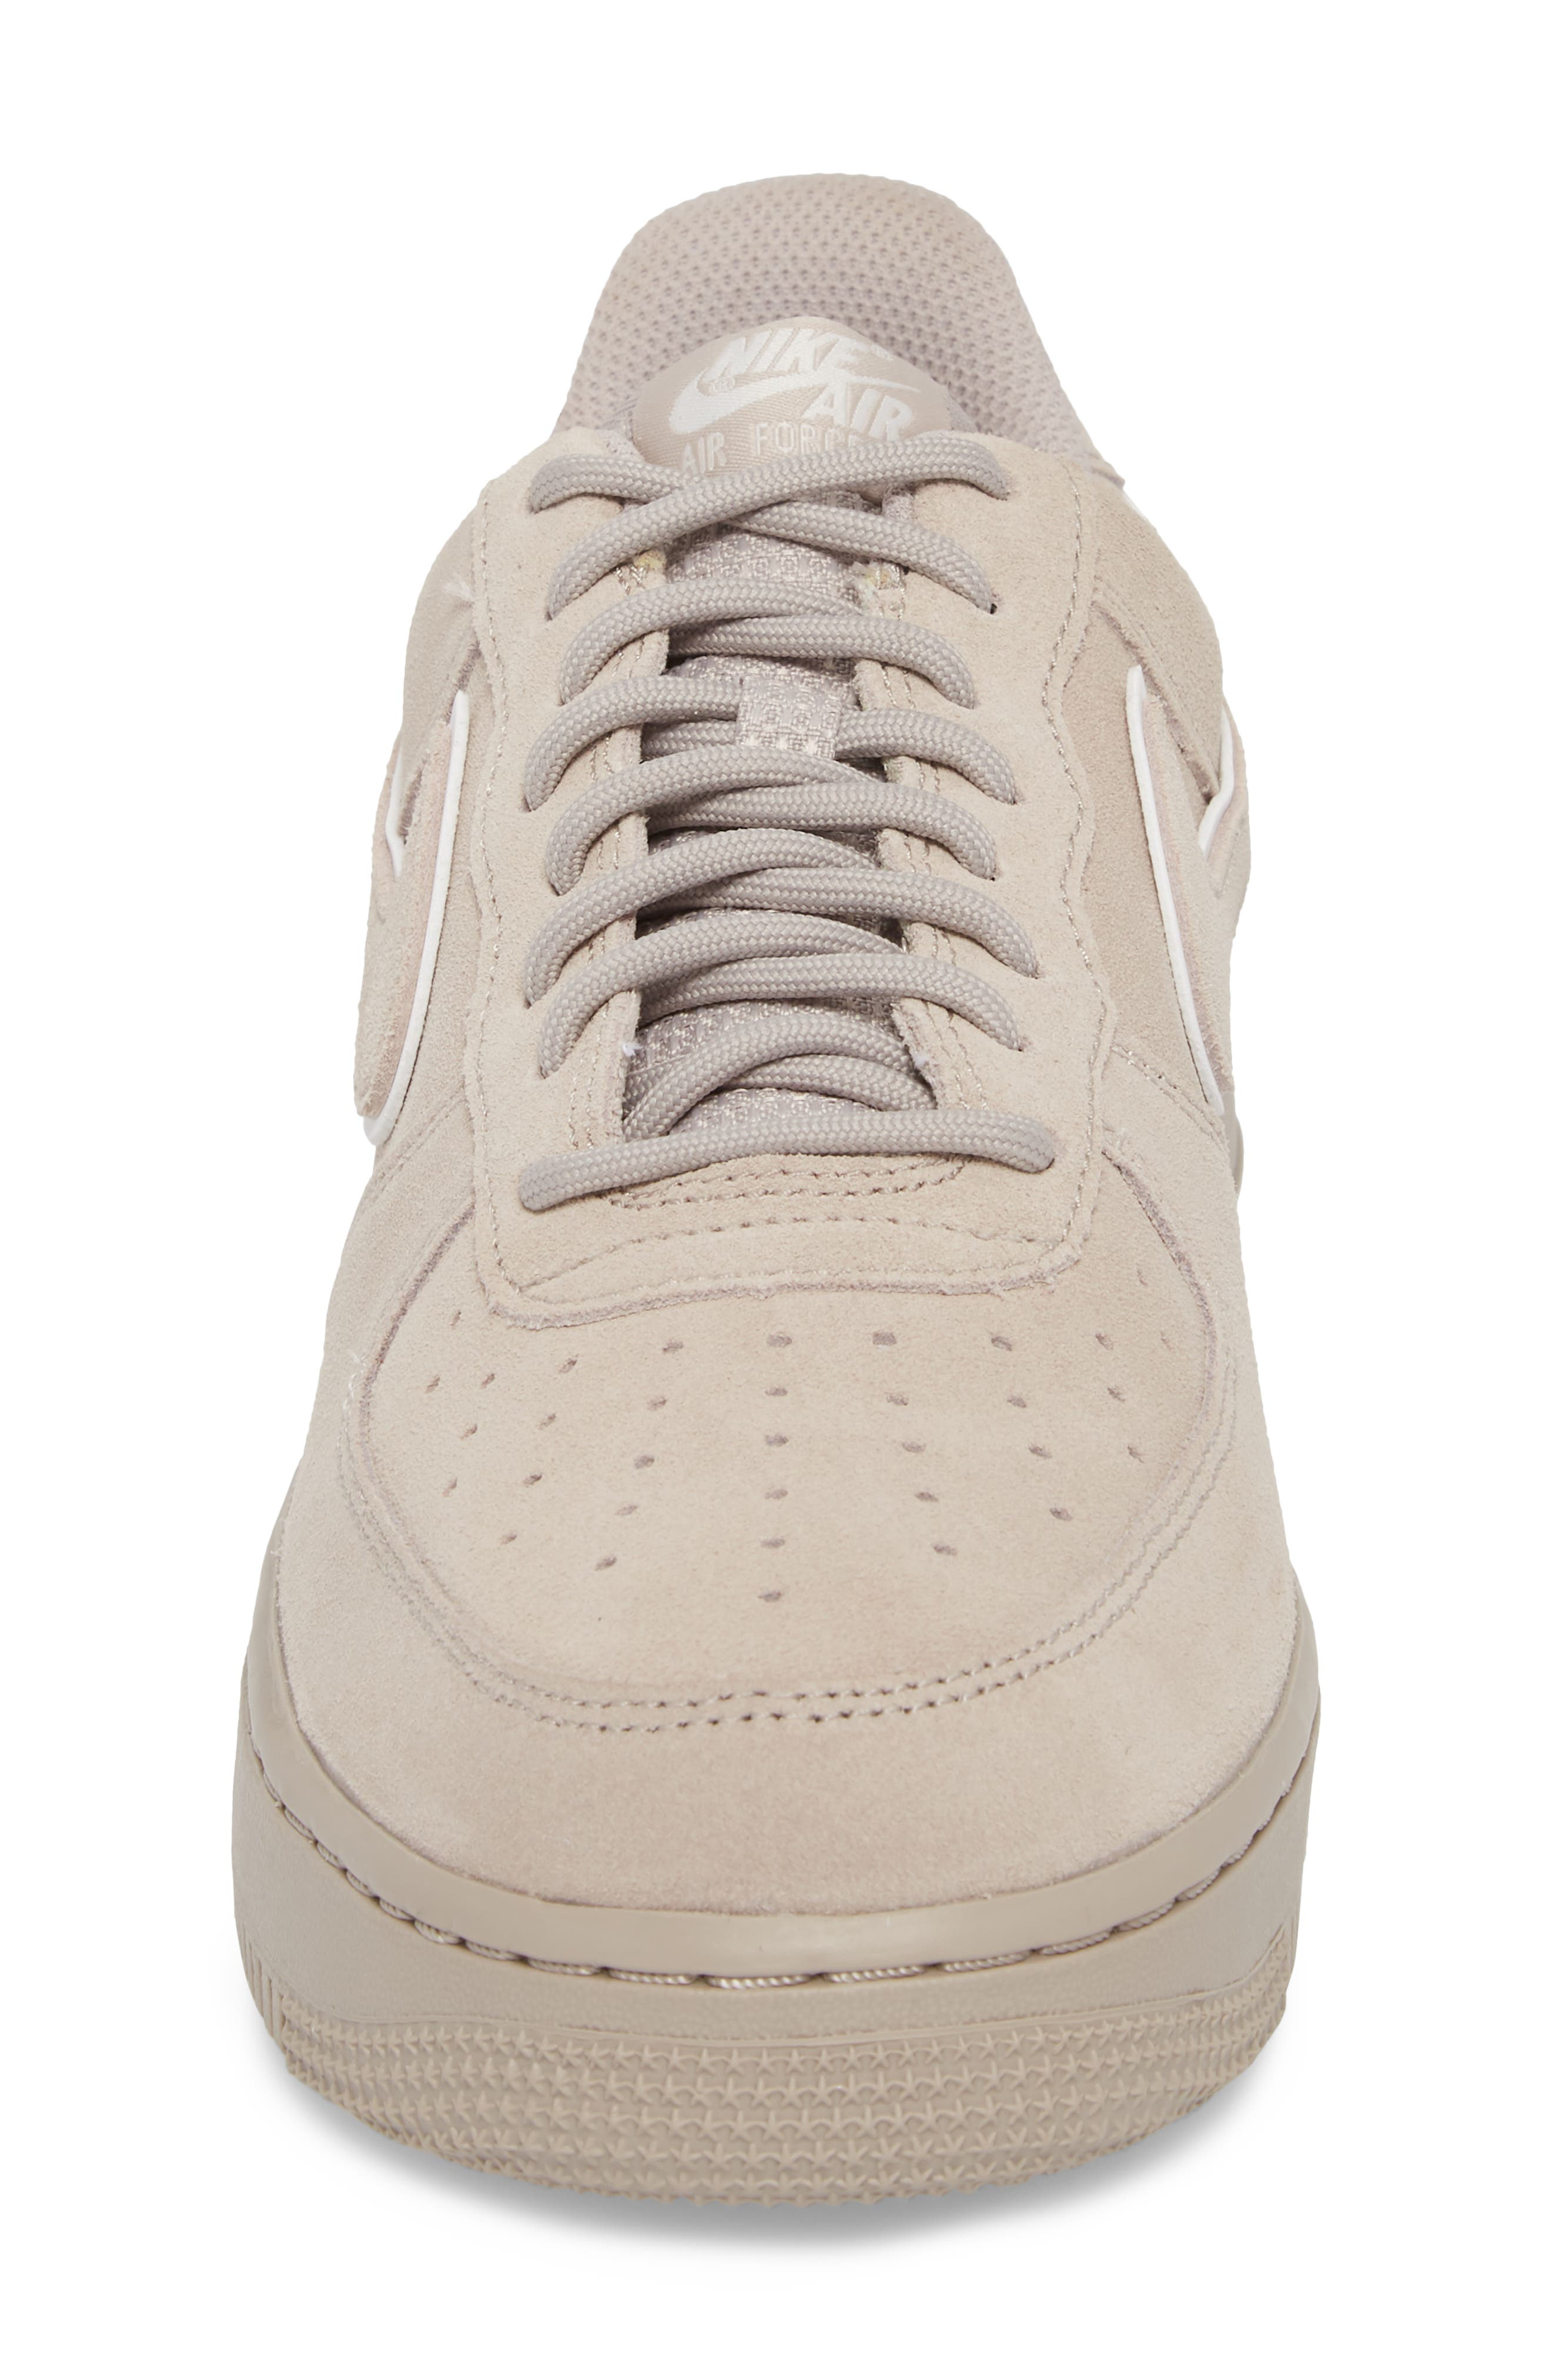 Air Force 1 '07 Low LV8 Sneaker,                             Alternate thumbnail 4, color,                             Moon Particle/ Sepia Stone